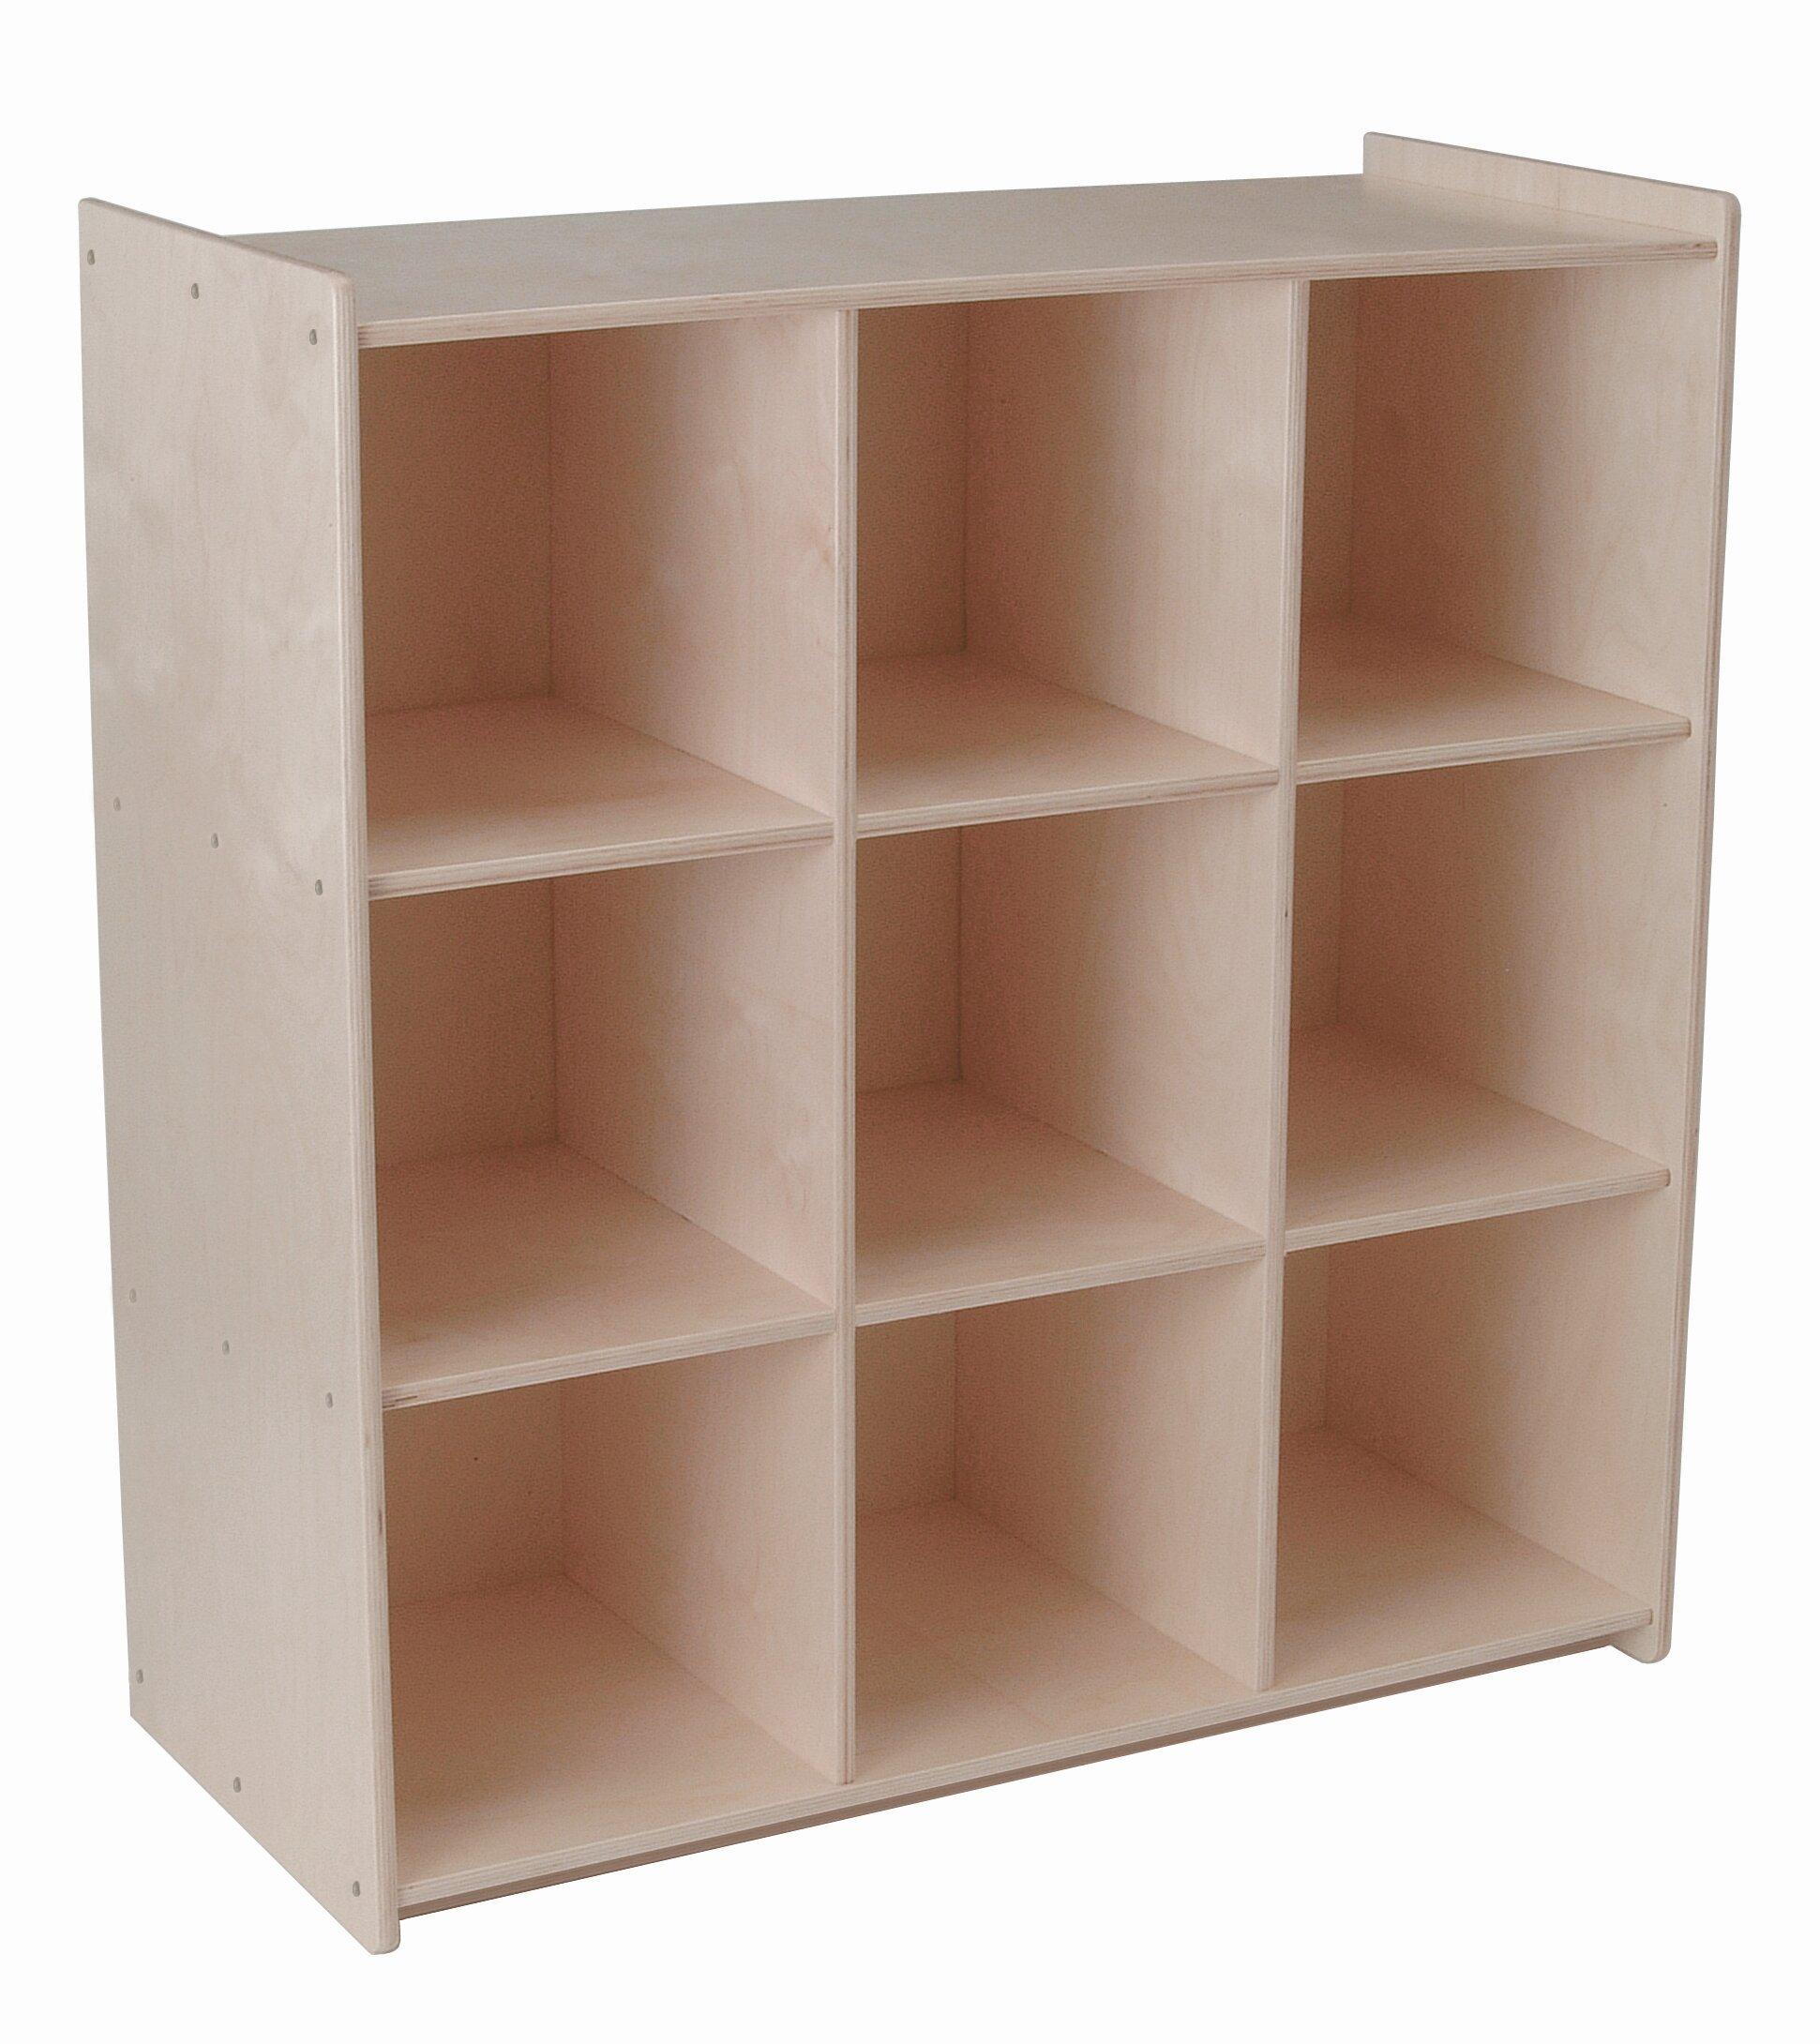 compartment wayfair keyword save cubby wall shelf